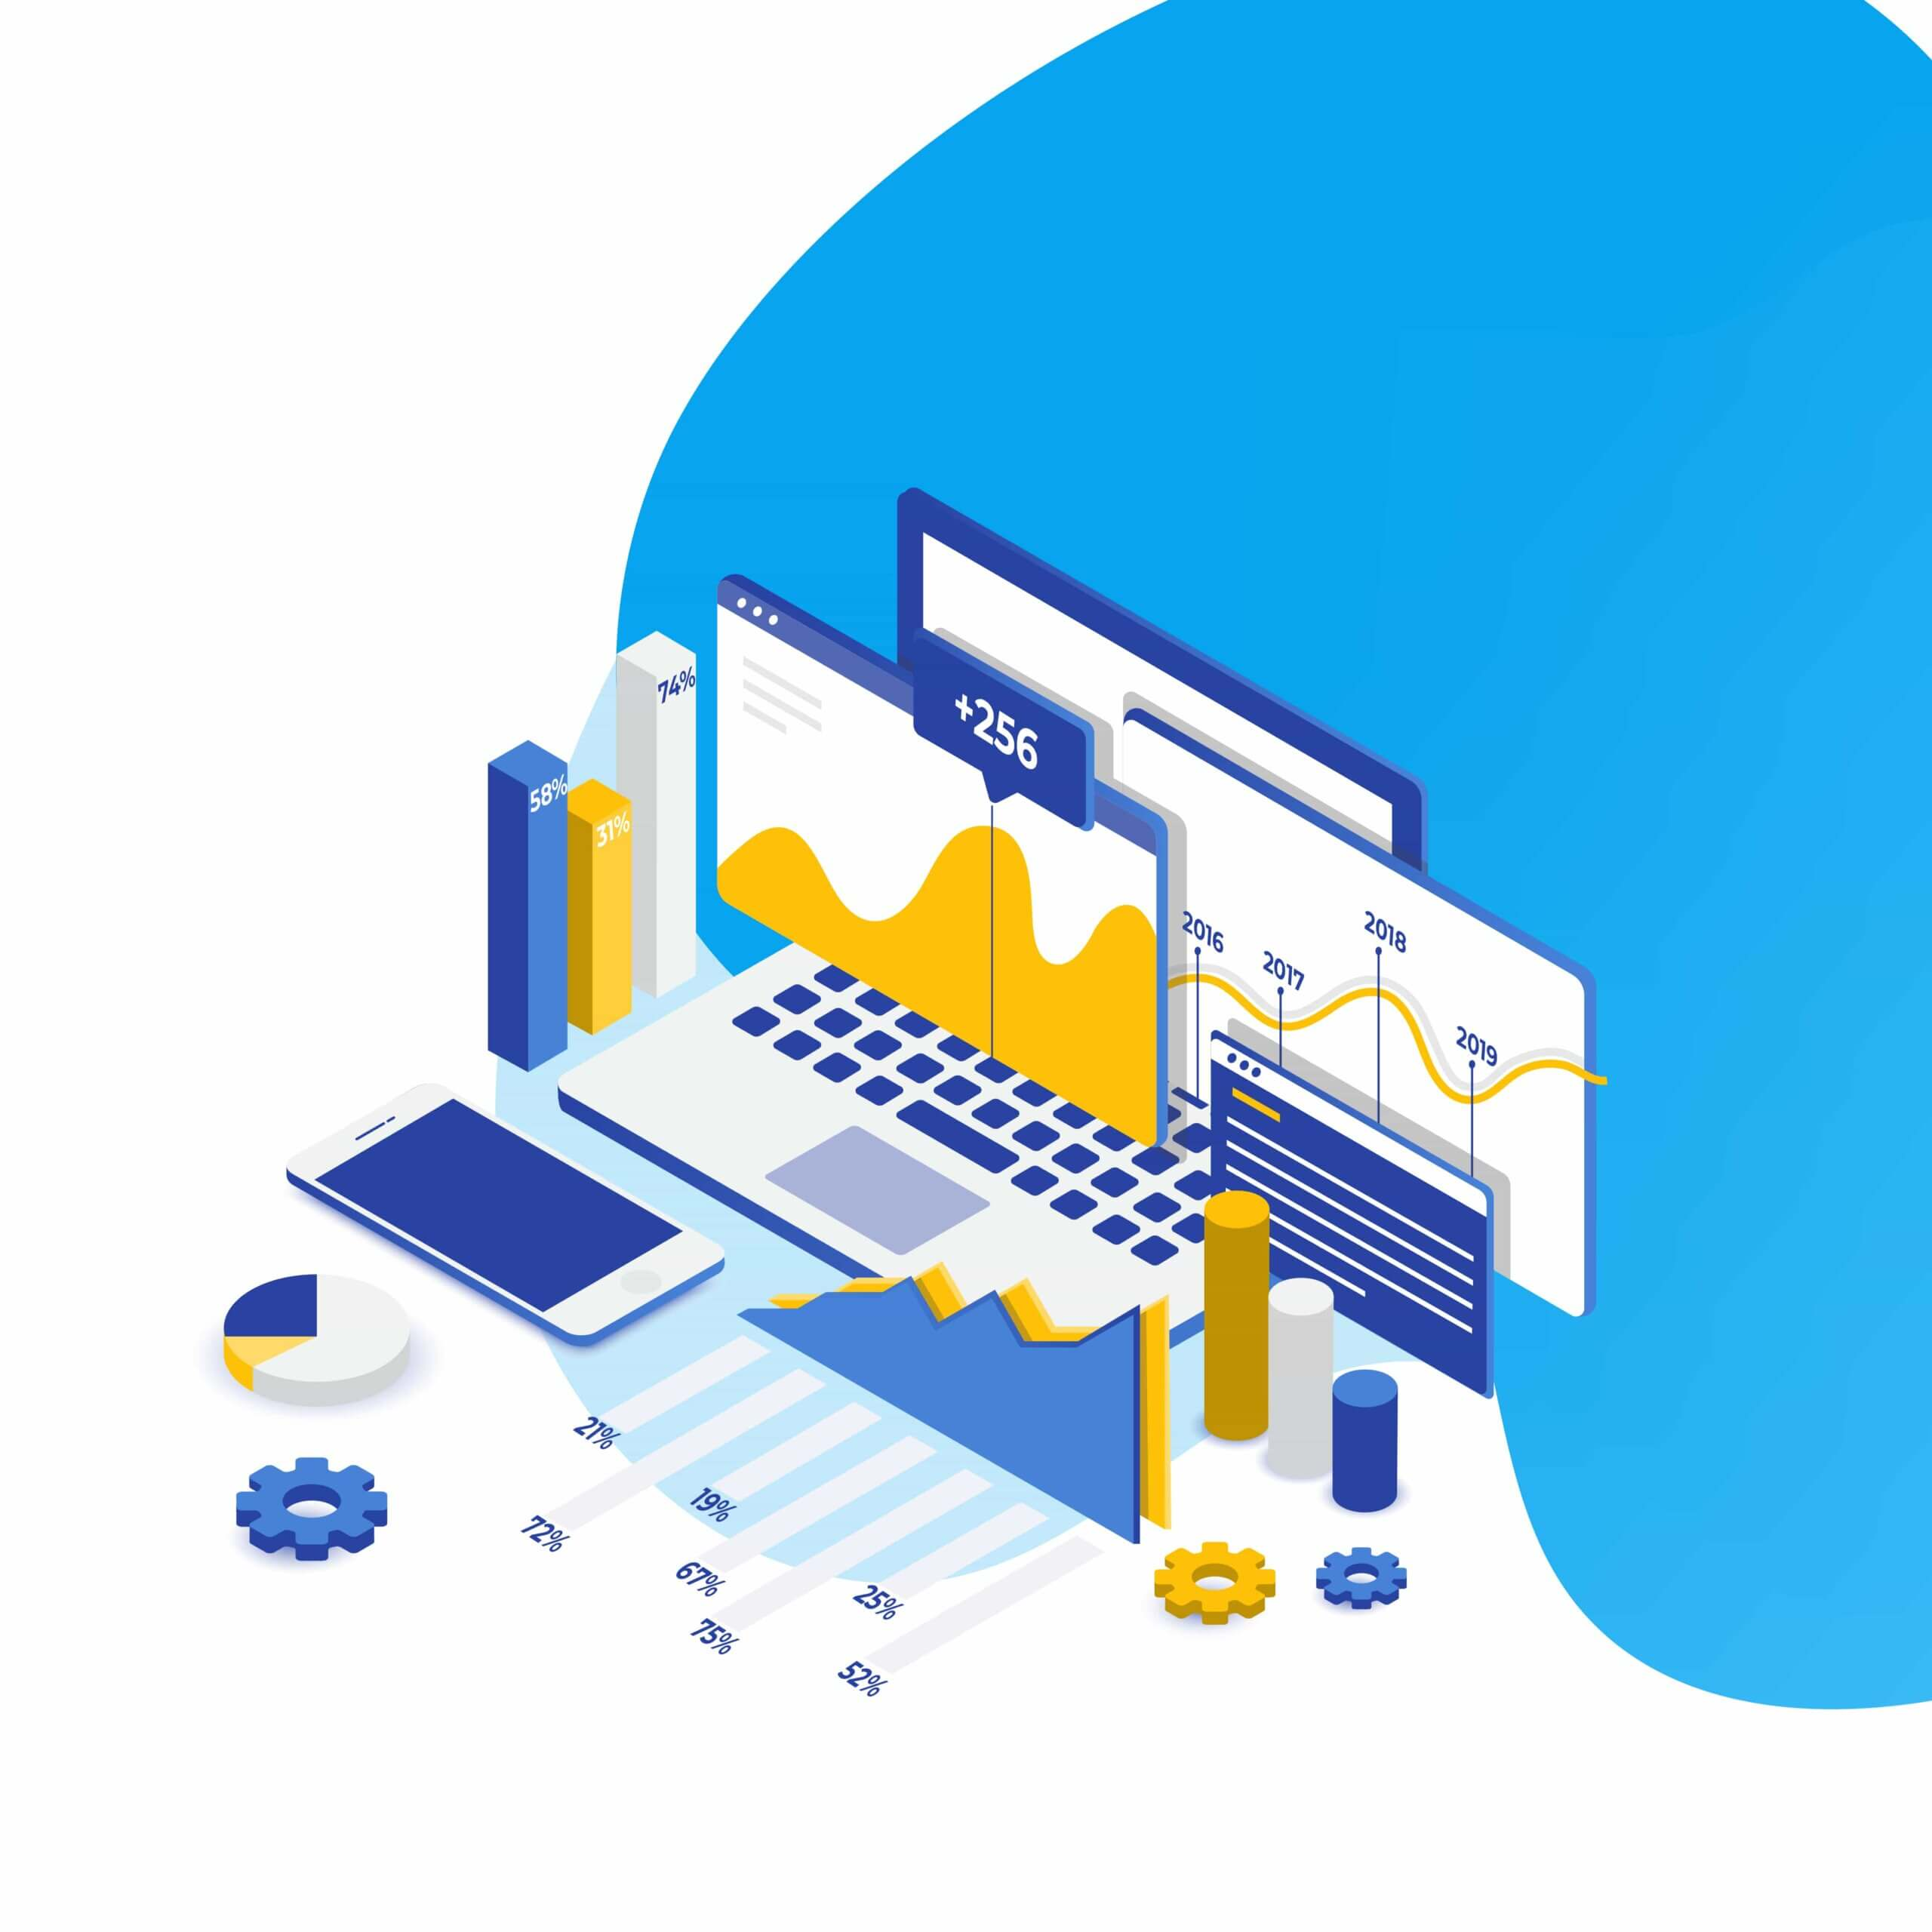 GROW YOUR BUSINESS WITH MINDCOB